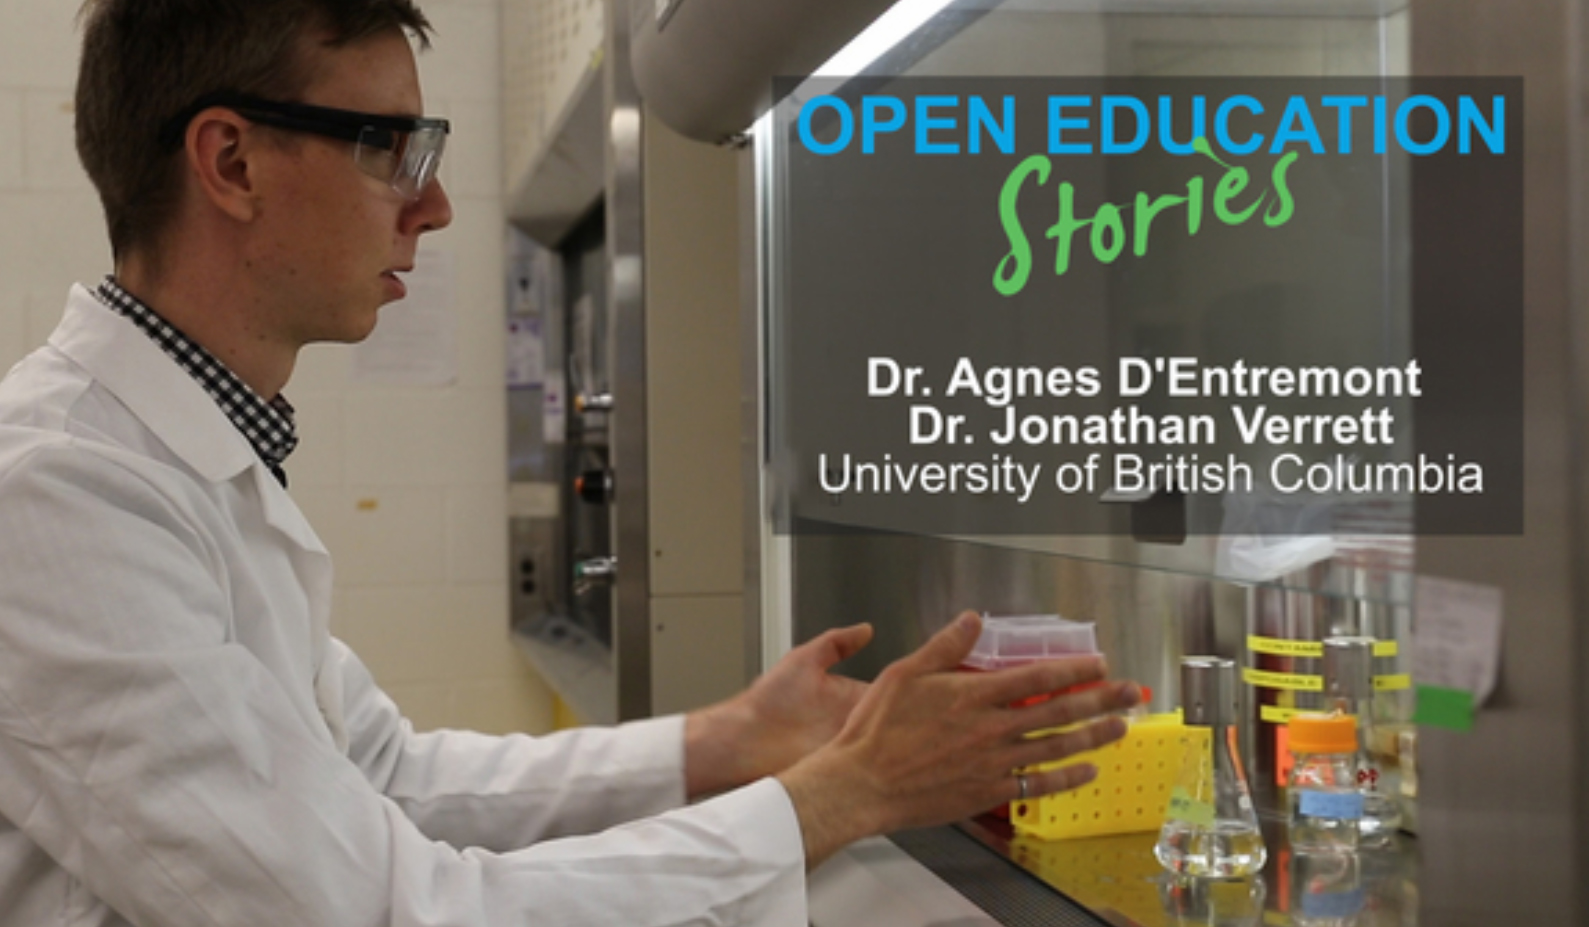 Open Education Stories